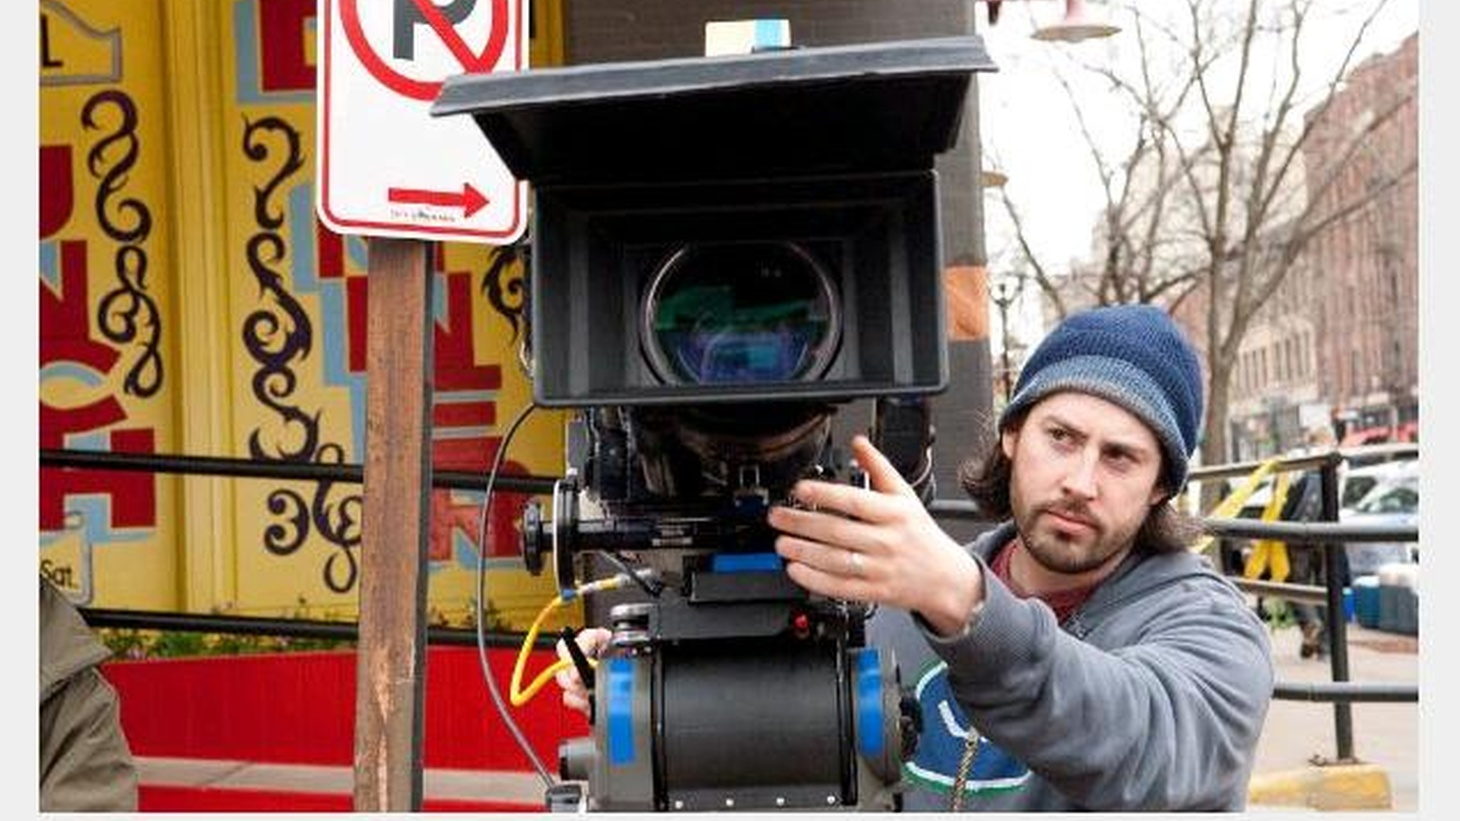 What's easier, directing your own screen play or someone else's? After Juno, Jason Reitman (Thank You for Smoking) has returned to directing his own, the adaptation of Up in the Air. He discusses what's smoother sailing.